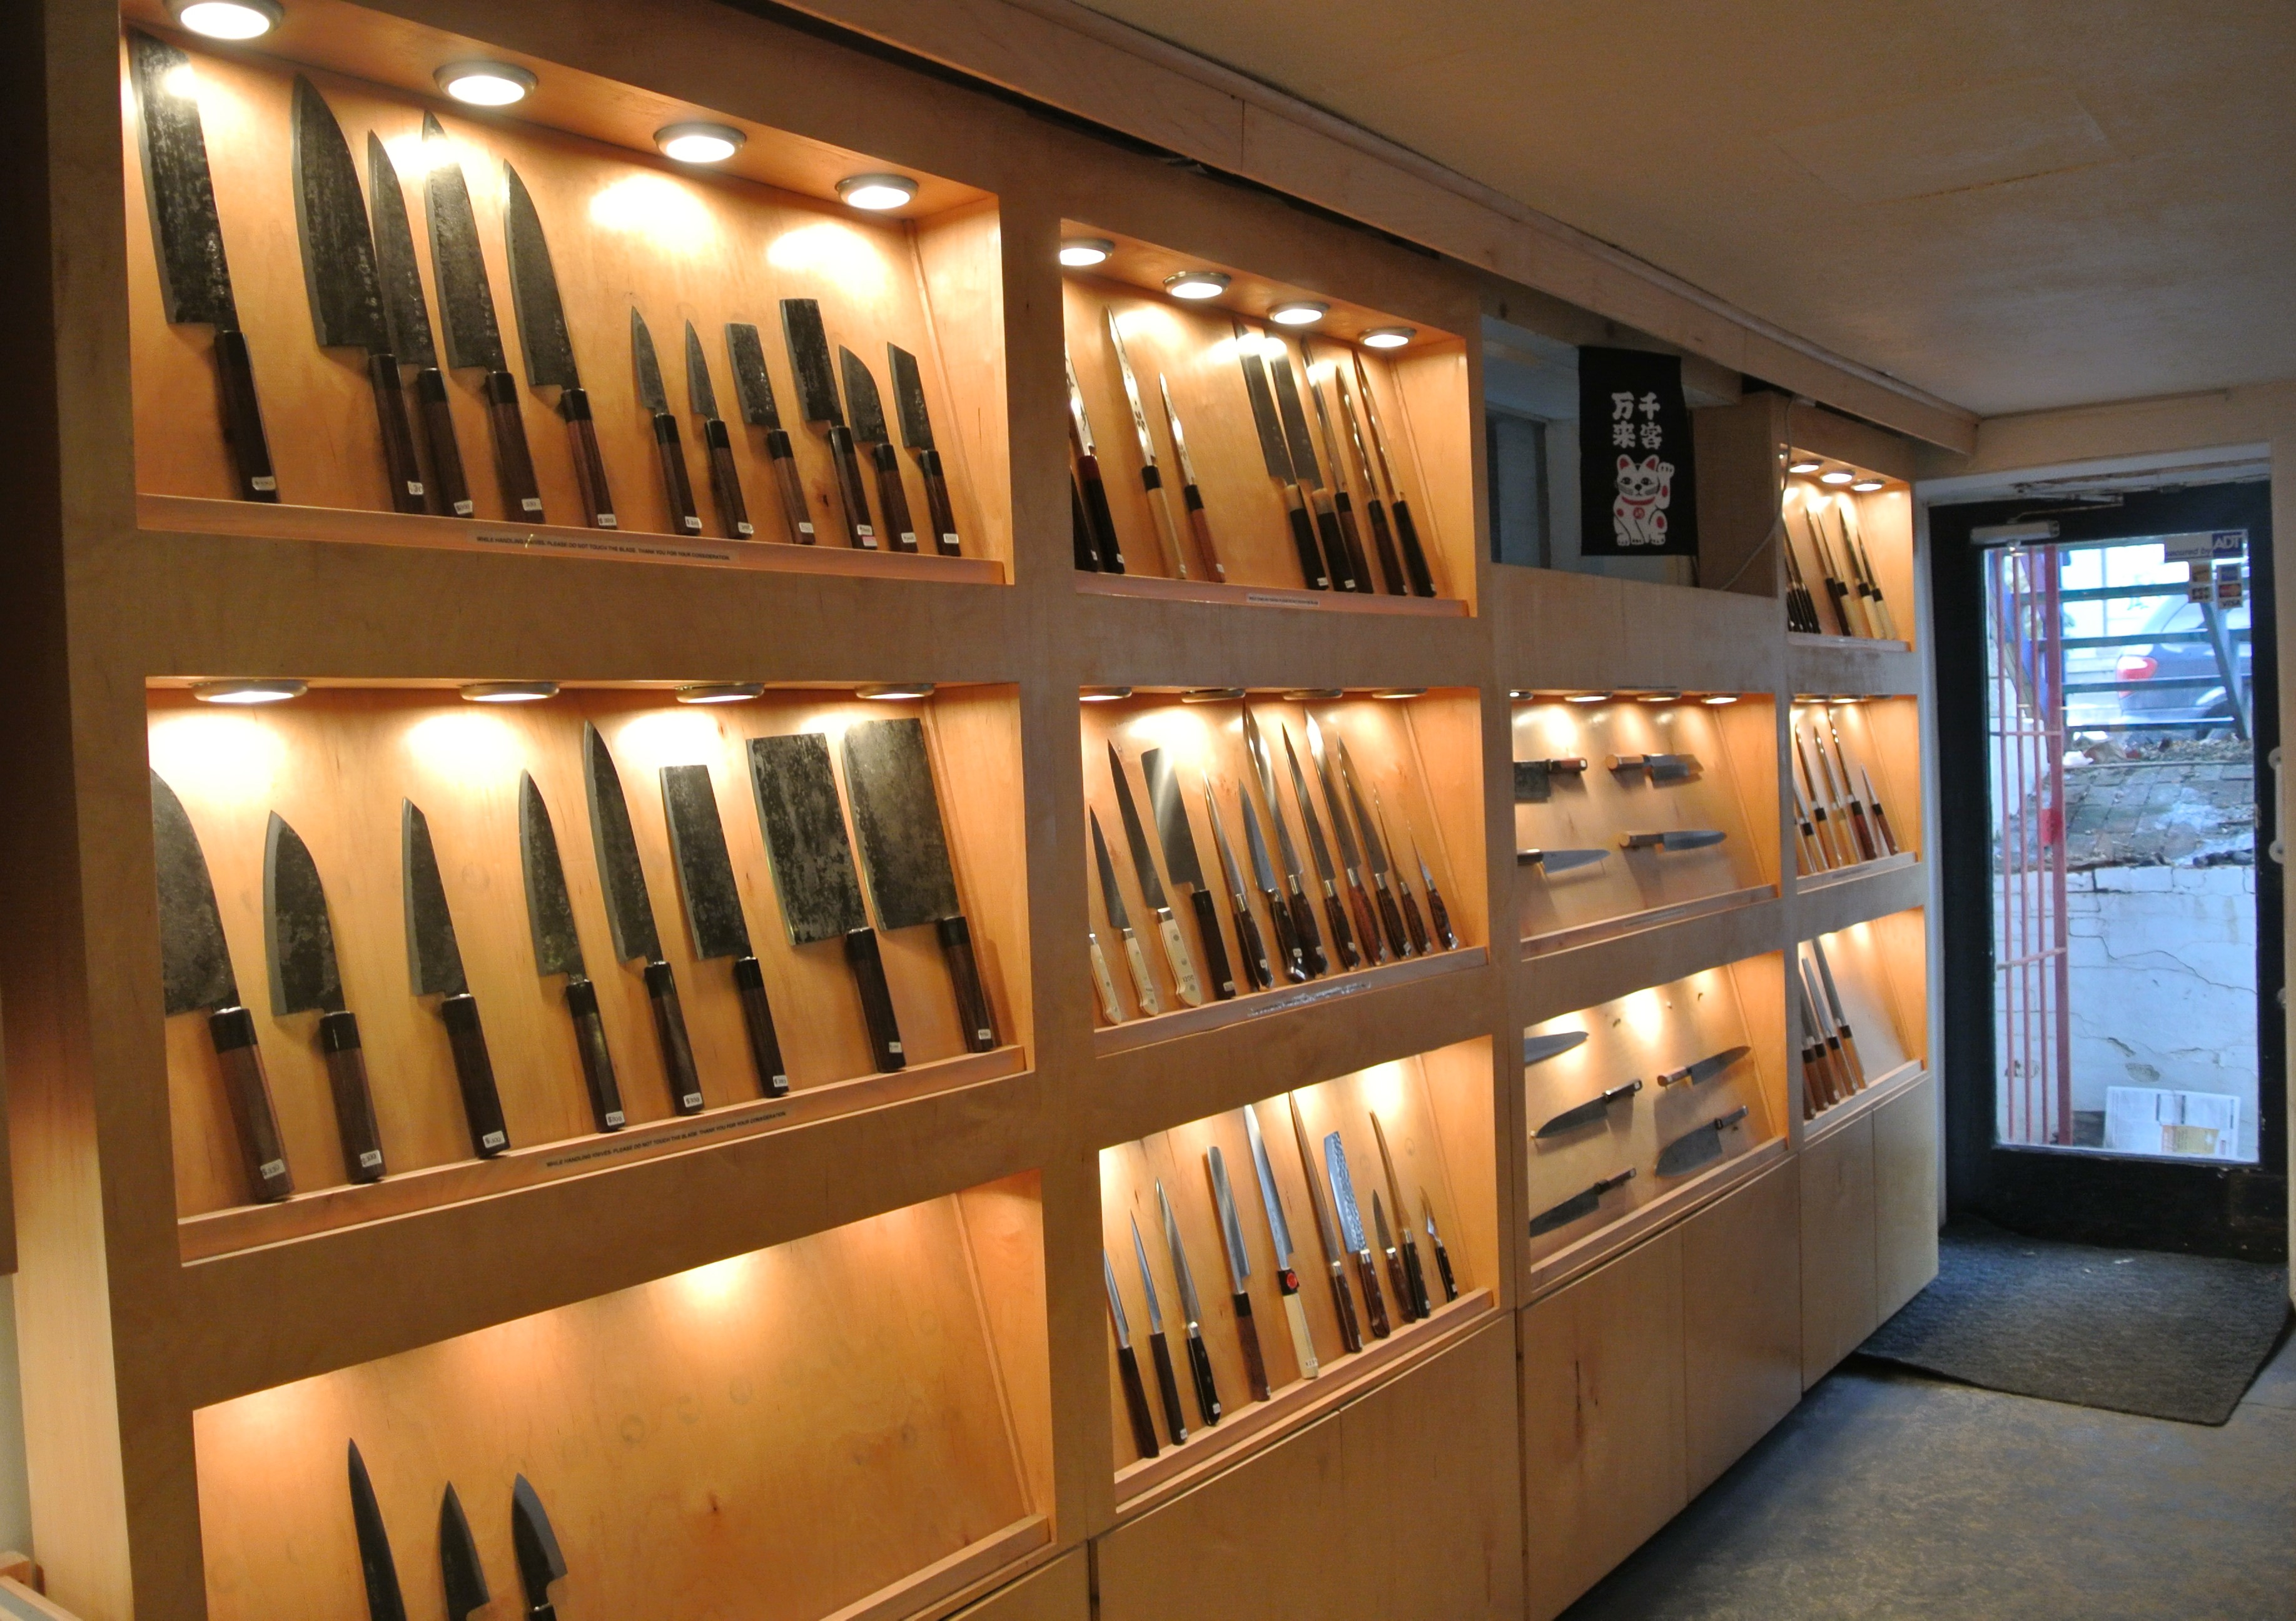 Tosho Knife Arts The Knife Shop That Connect Japanese